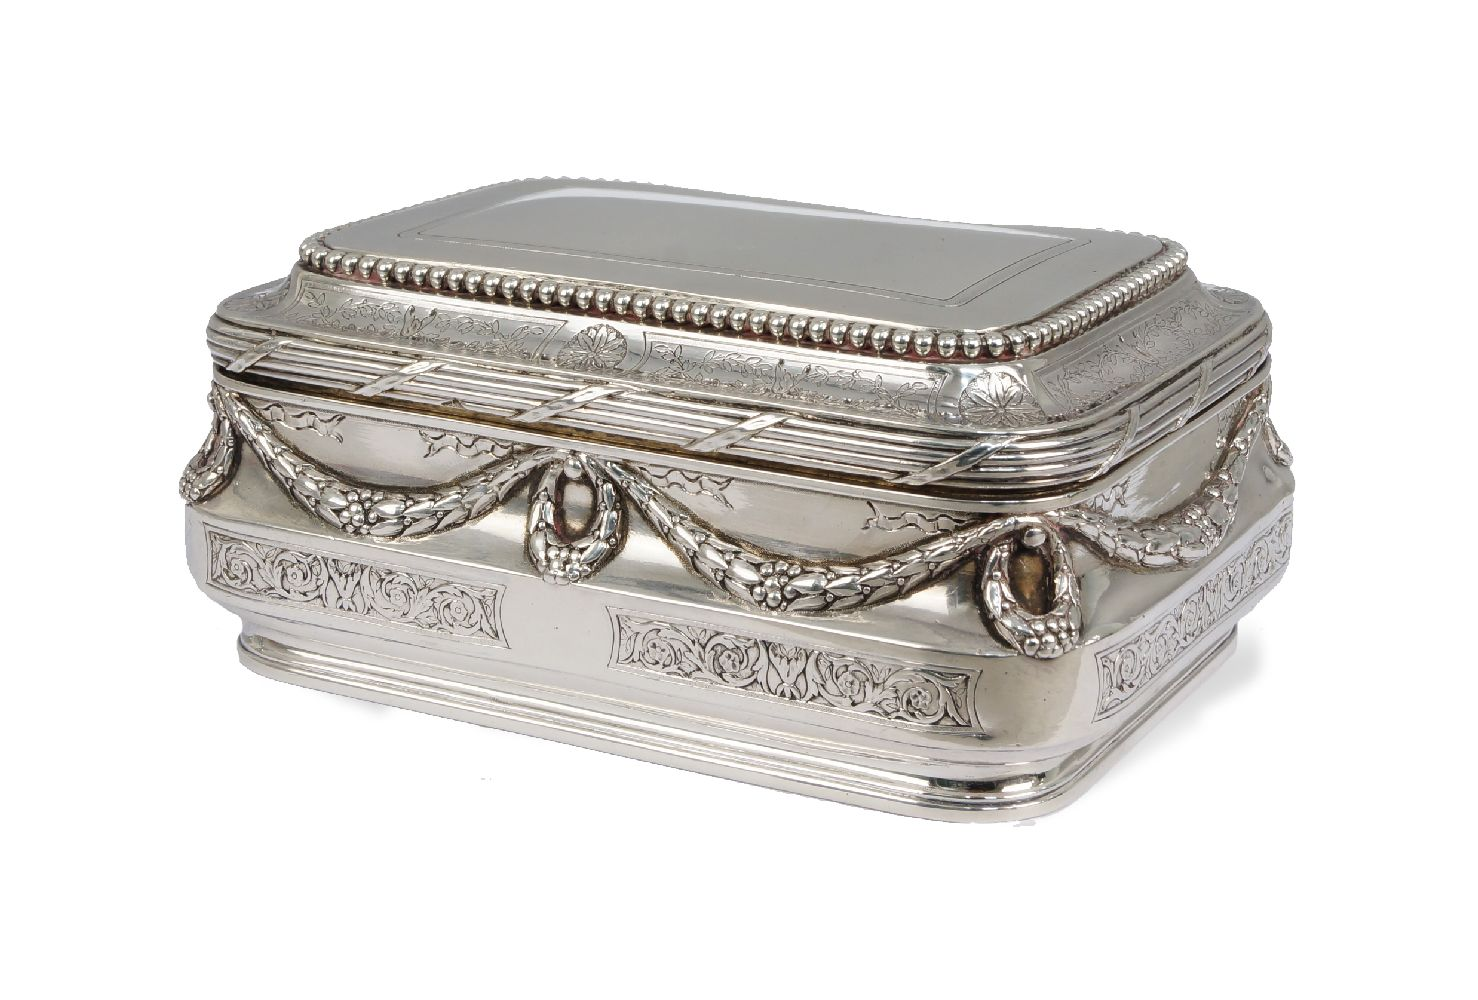 Lot 65 - Andre Aucoc: (1887-1911) A fine quality French silver sugar box, of rectangular form, the stepped